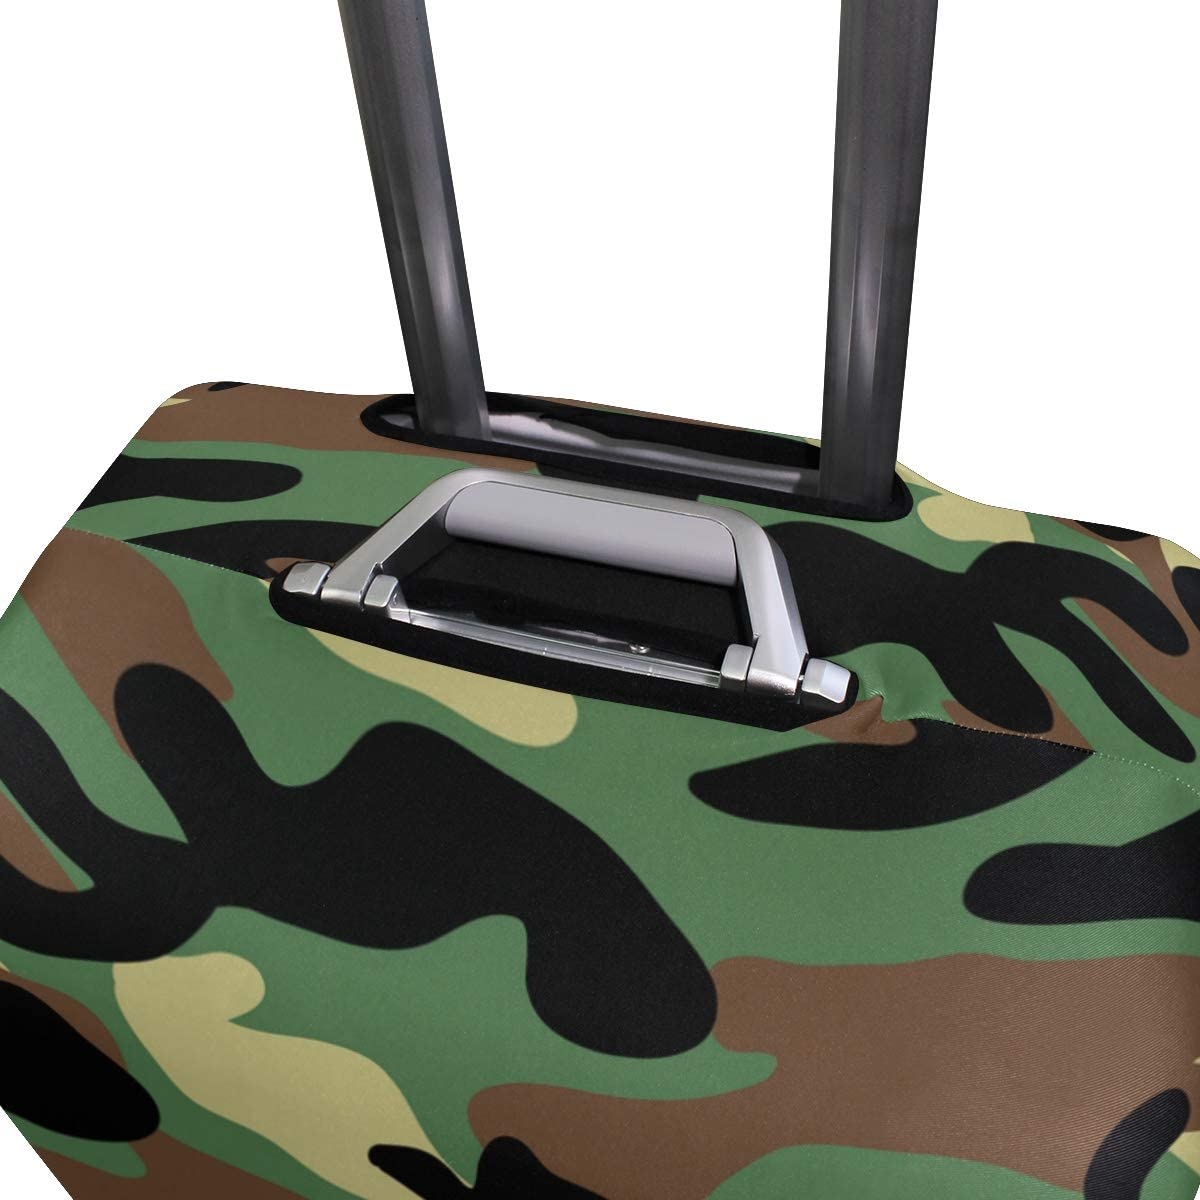 FOLPPLY Camouflage Pattern Luggage Cover Baggage Suitcase Travel Protector Fit for 18-32 Inch